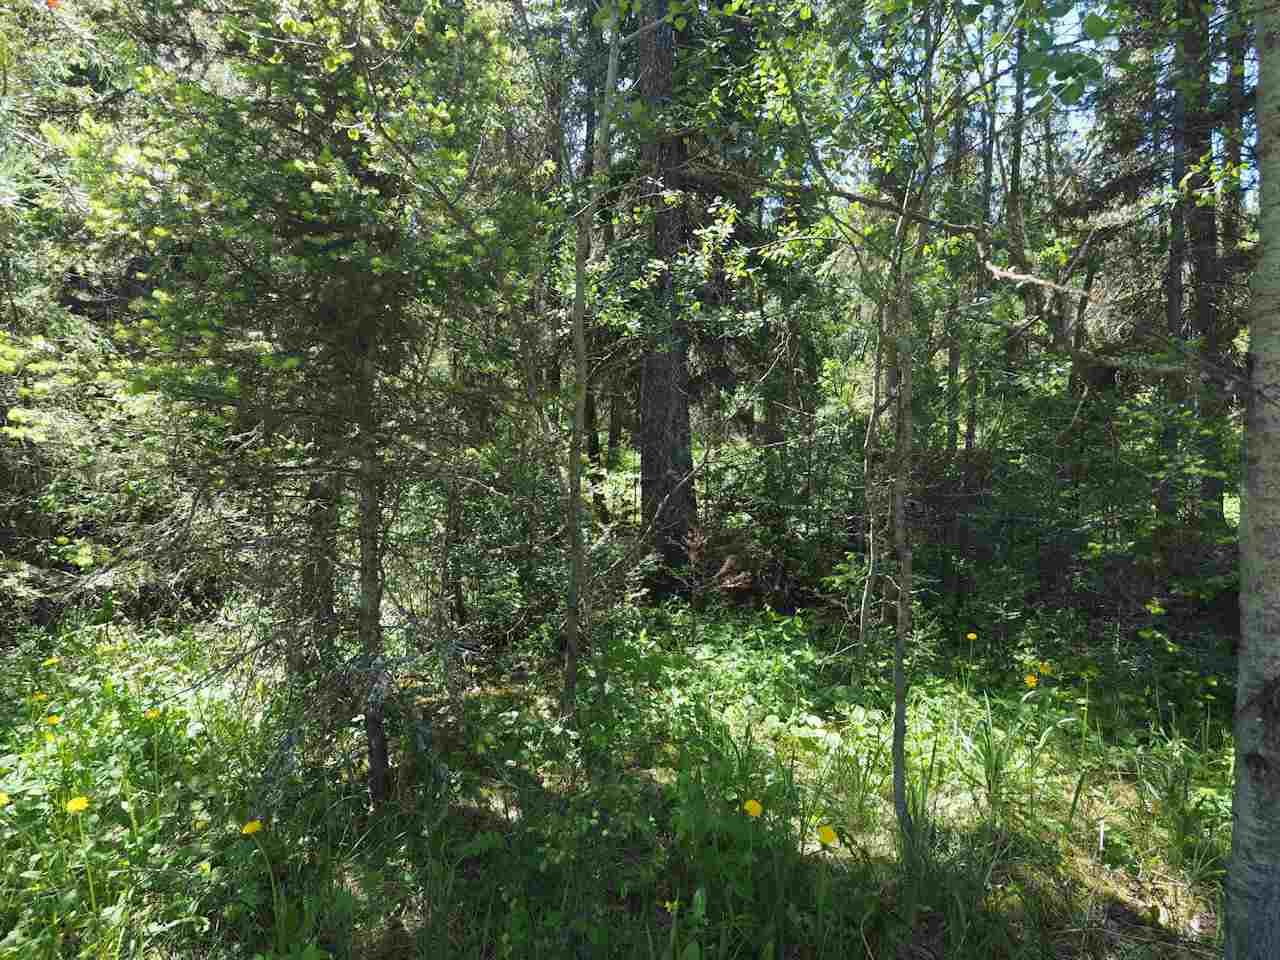 Photo 4: Photos: LOT 9 EASZEE Drive in 108 Mile Ranch: 108 Ranch Land for sale (100 Mile House (Zone 10))  : MLS®# R2467252